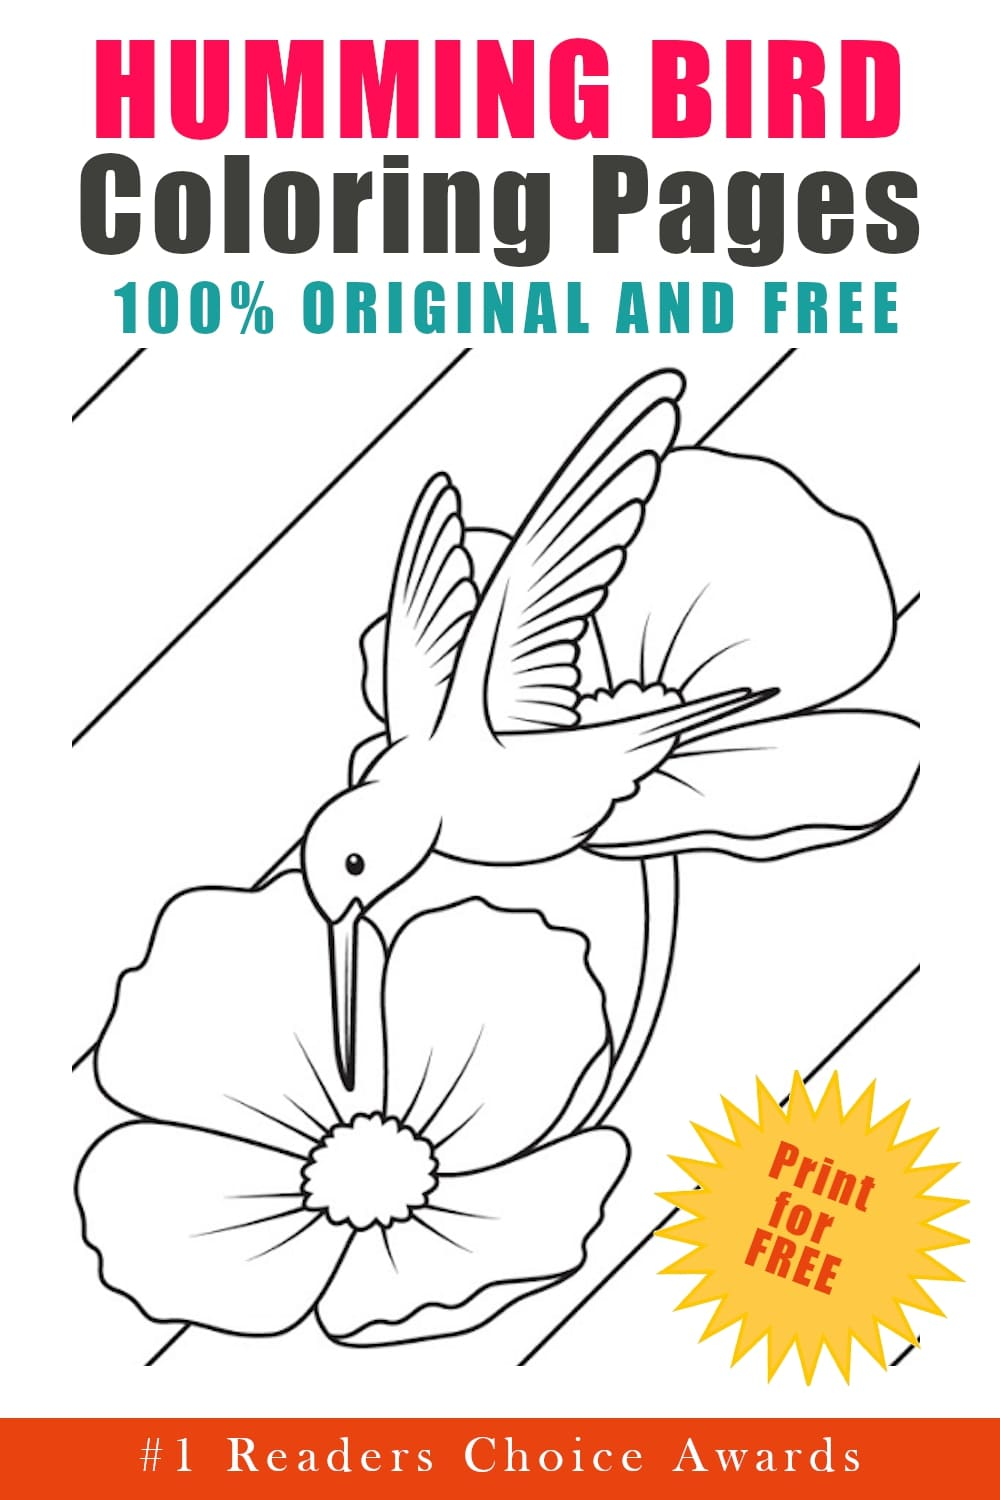 original and free hummingbird coloring pages